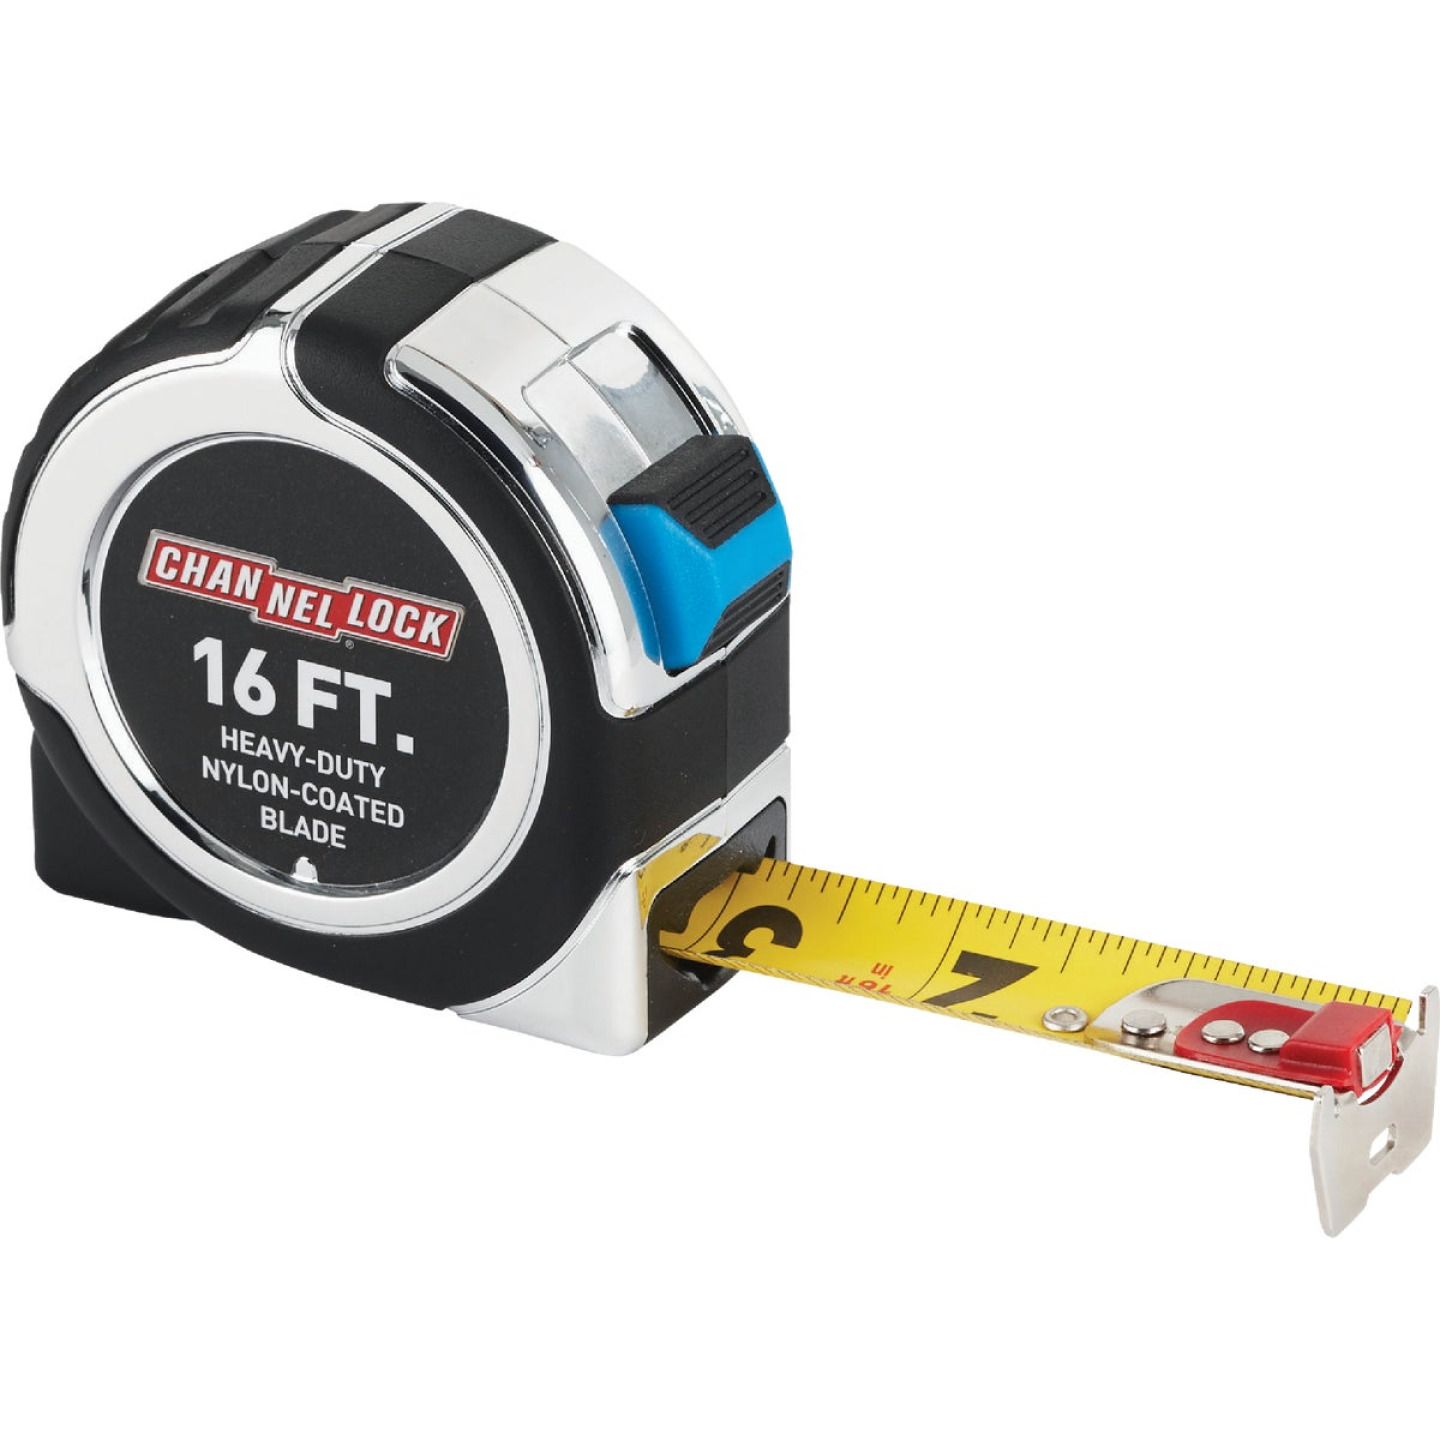 Channellock 16 Ft. Professional Tape Measure Image 1